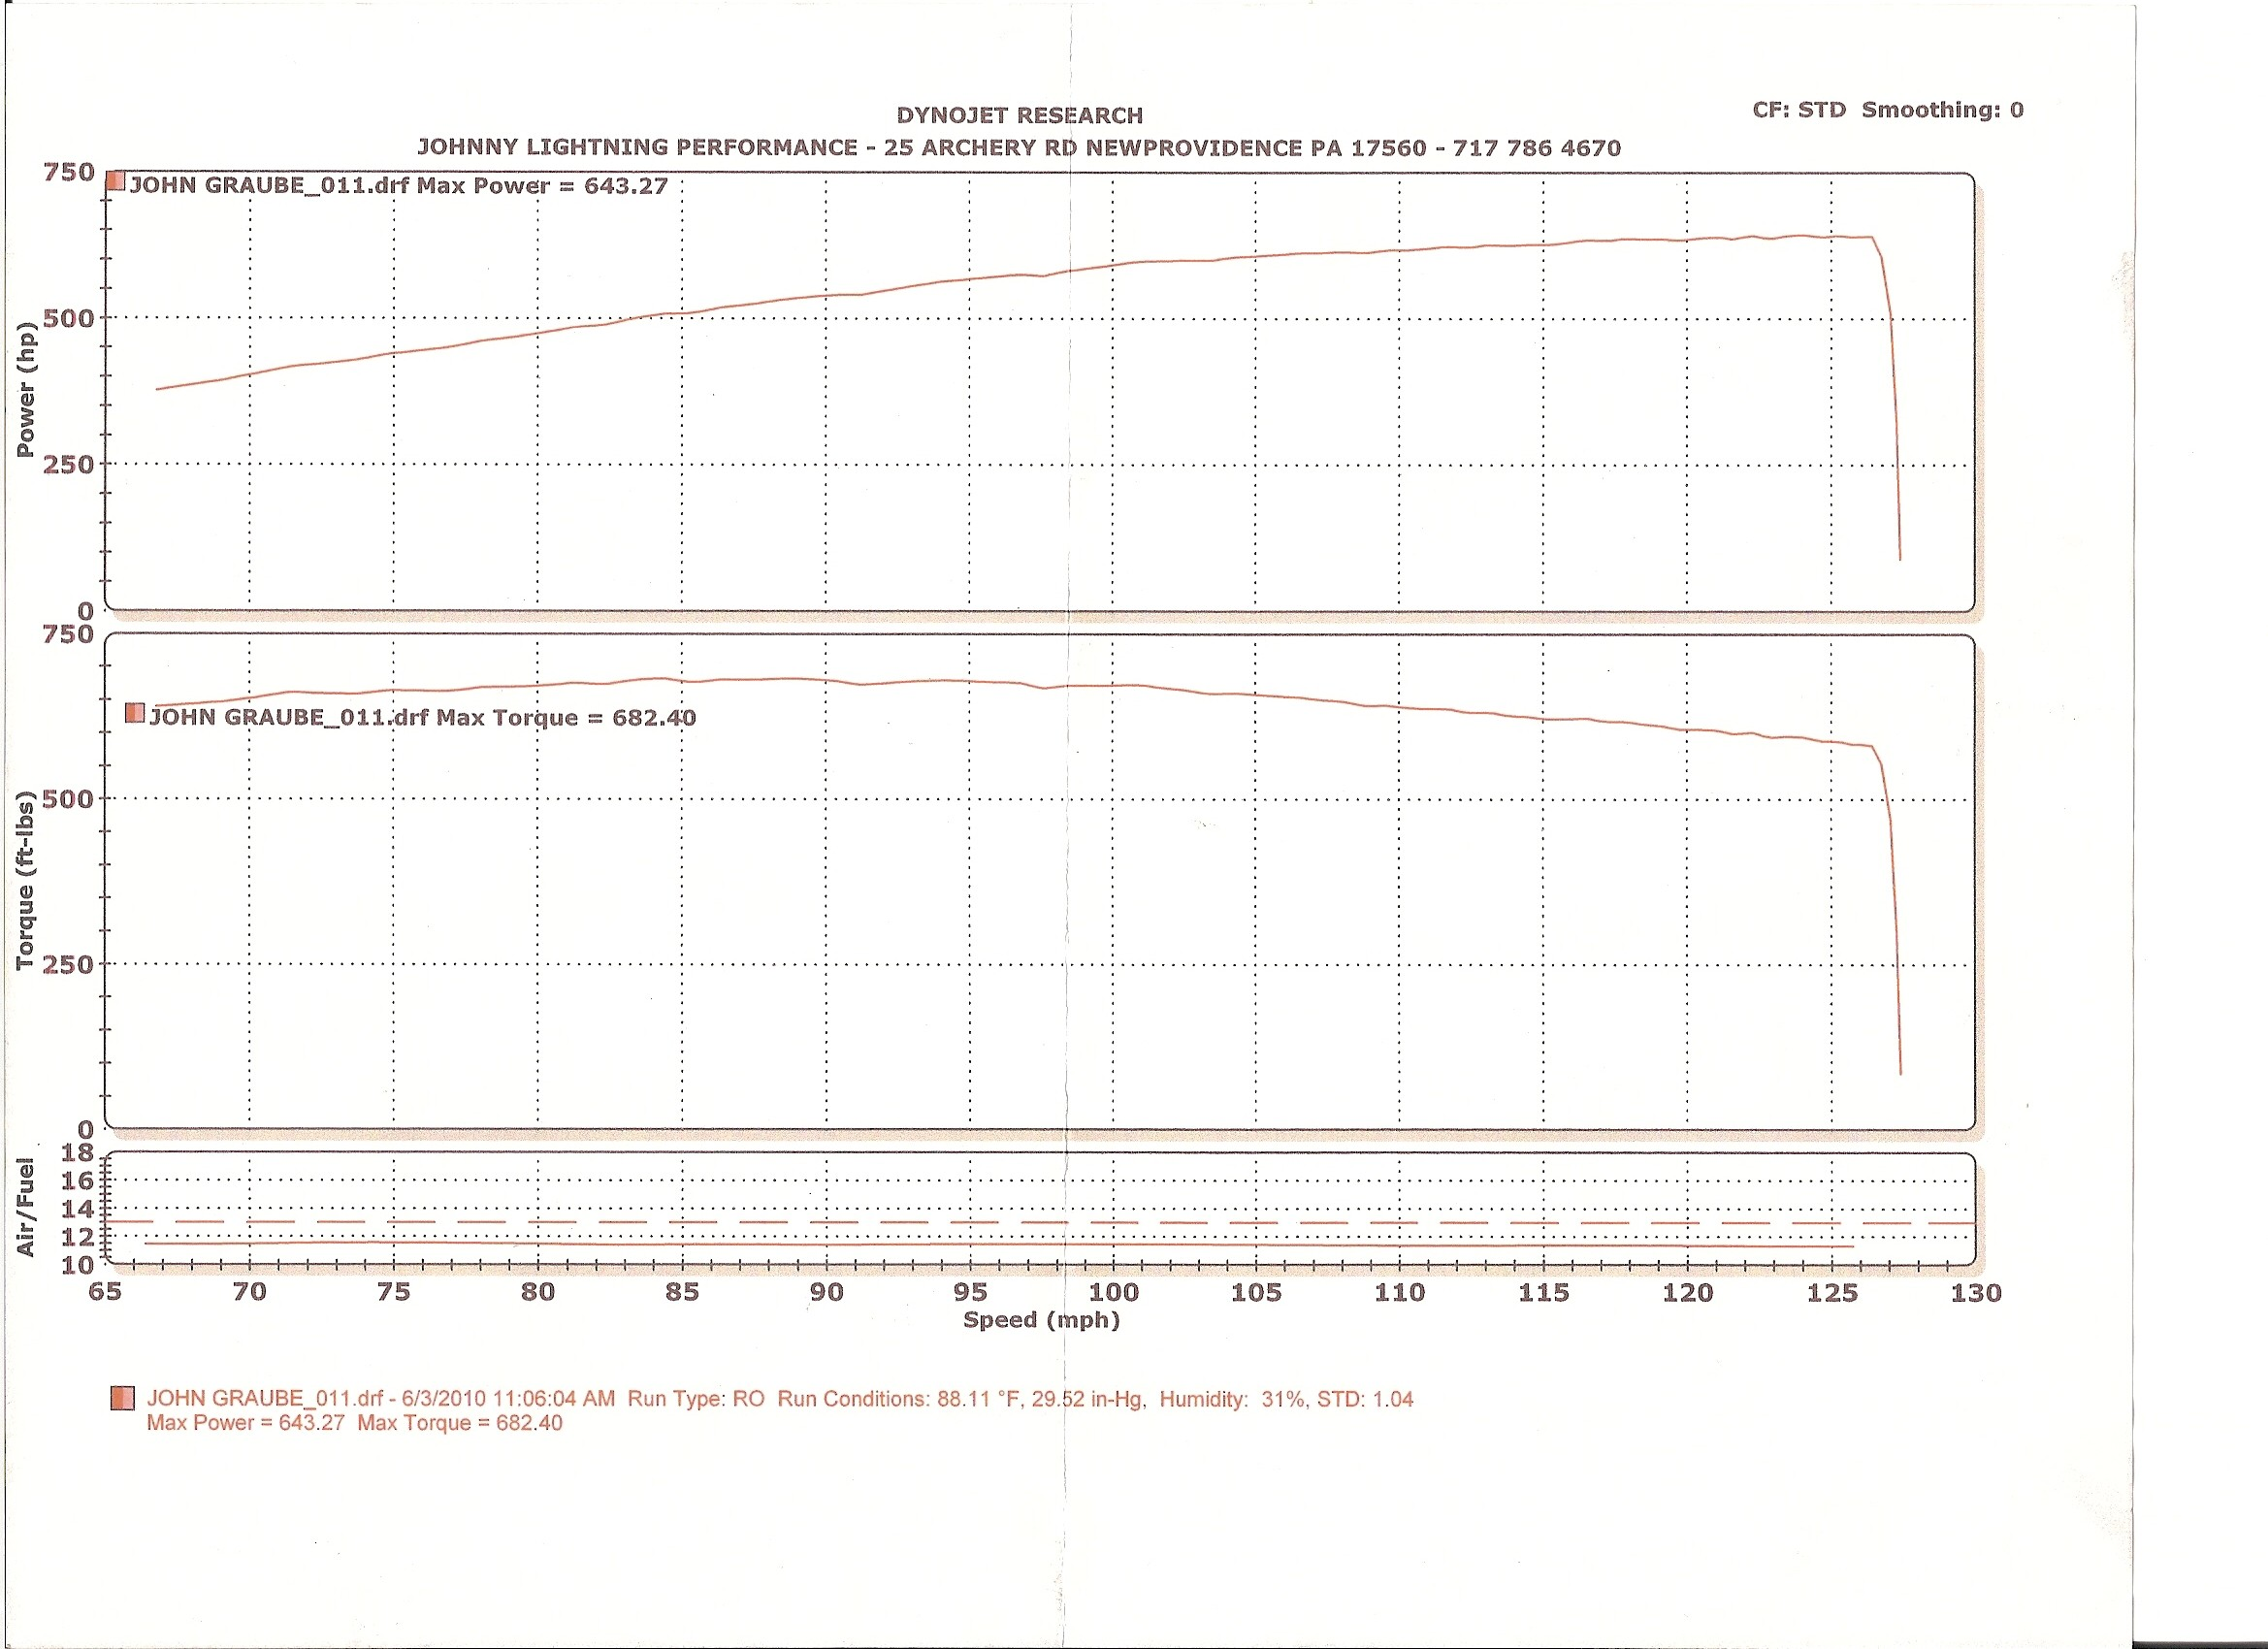 2004 Ford F150 Lightning SVT Dyno Results Graph